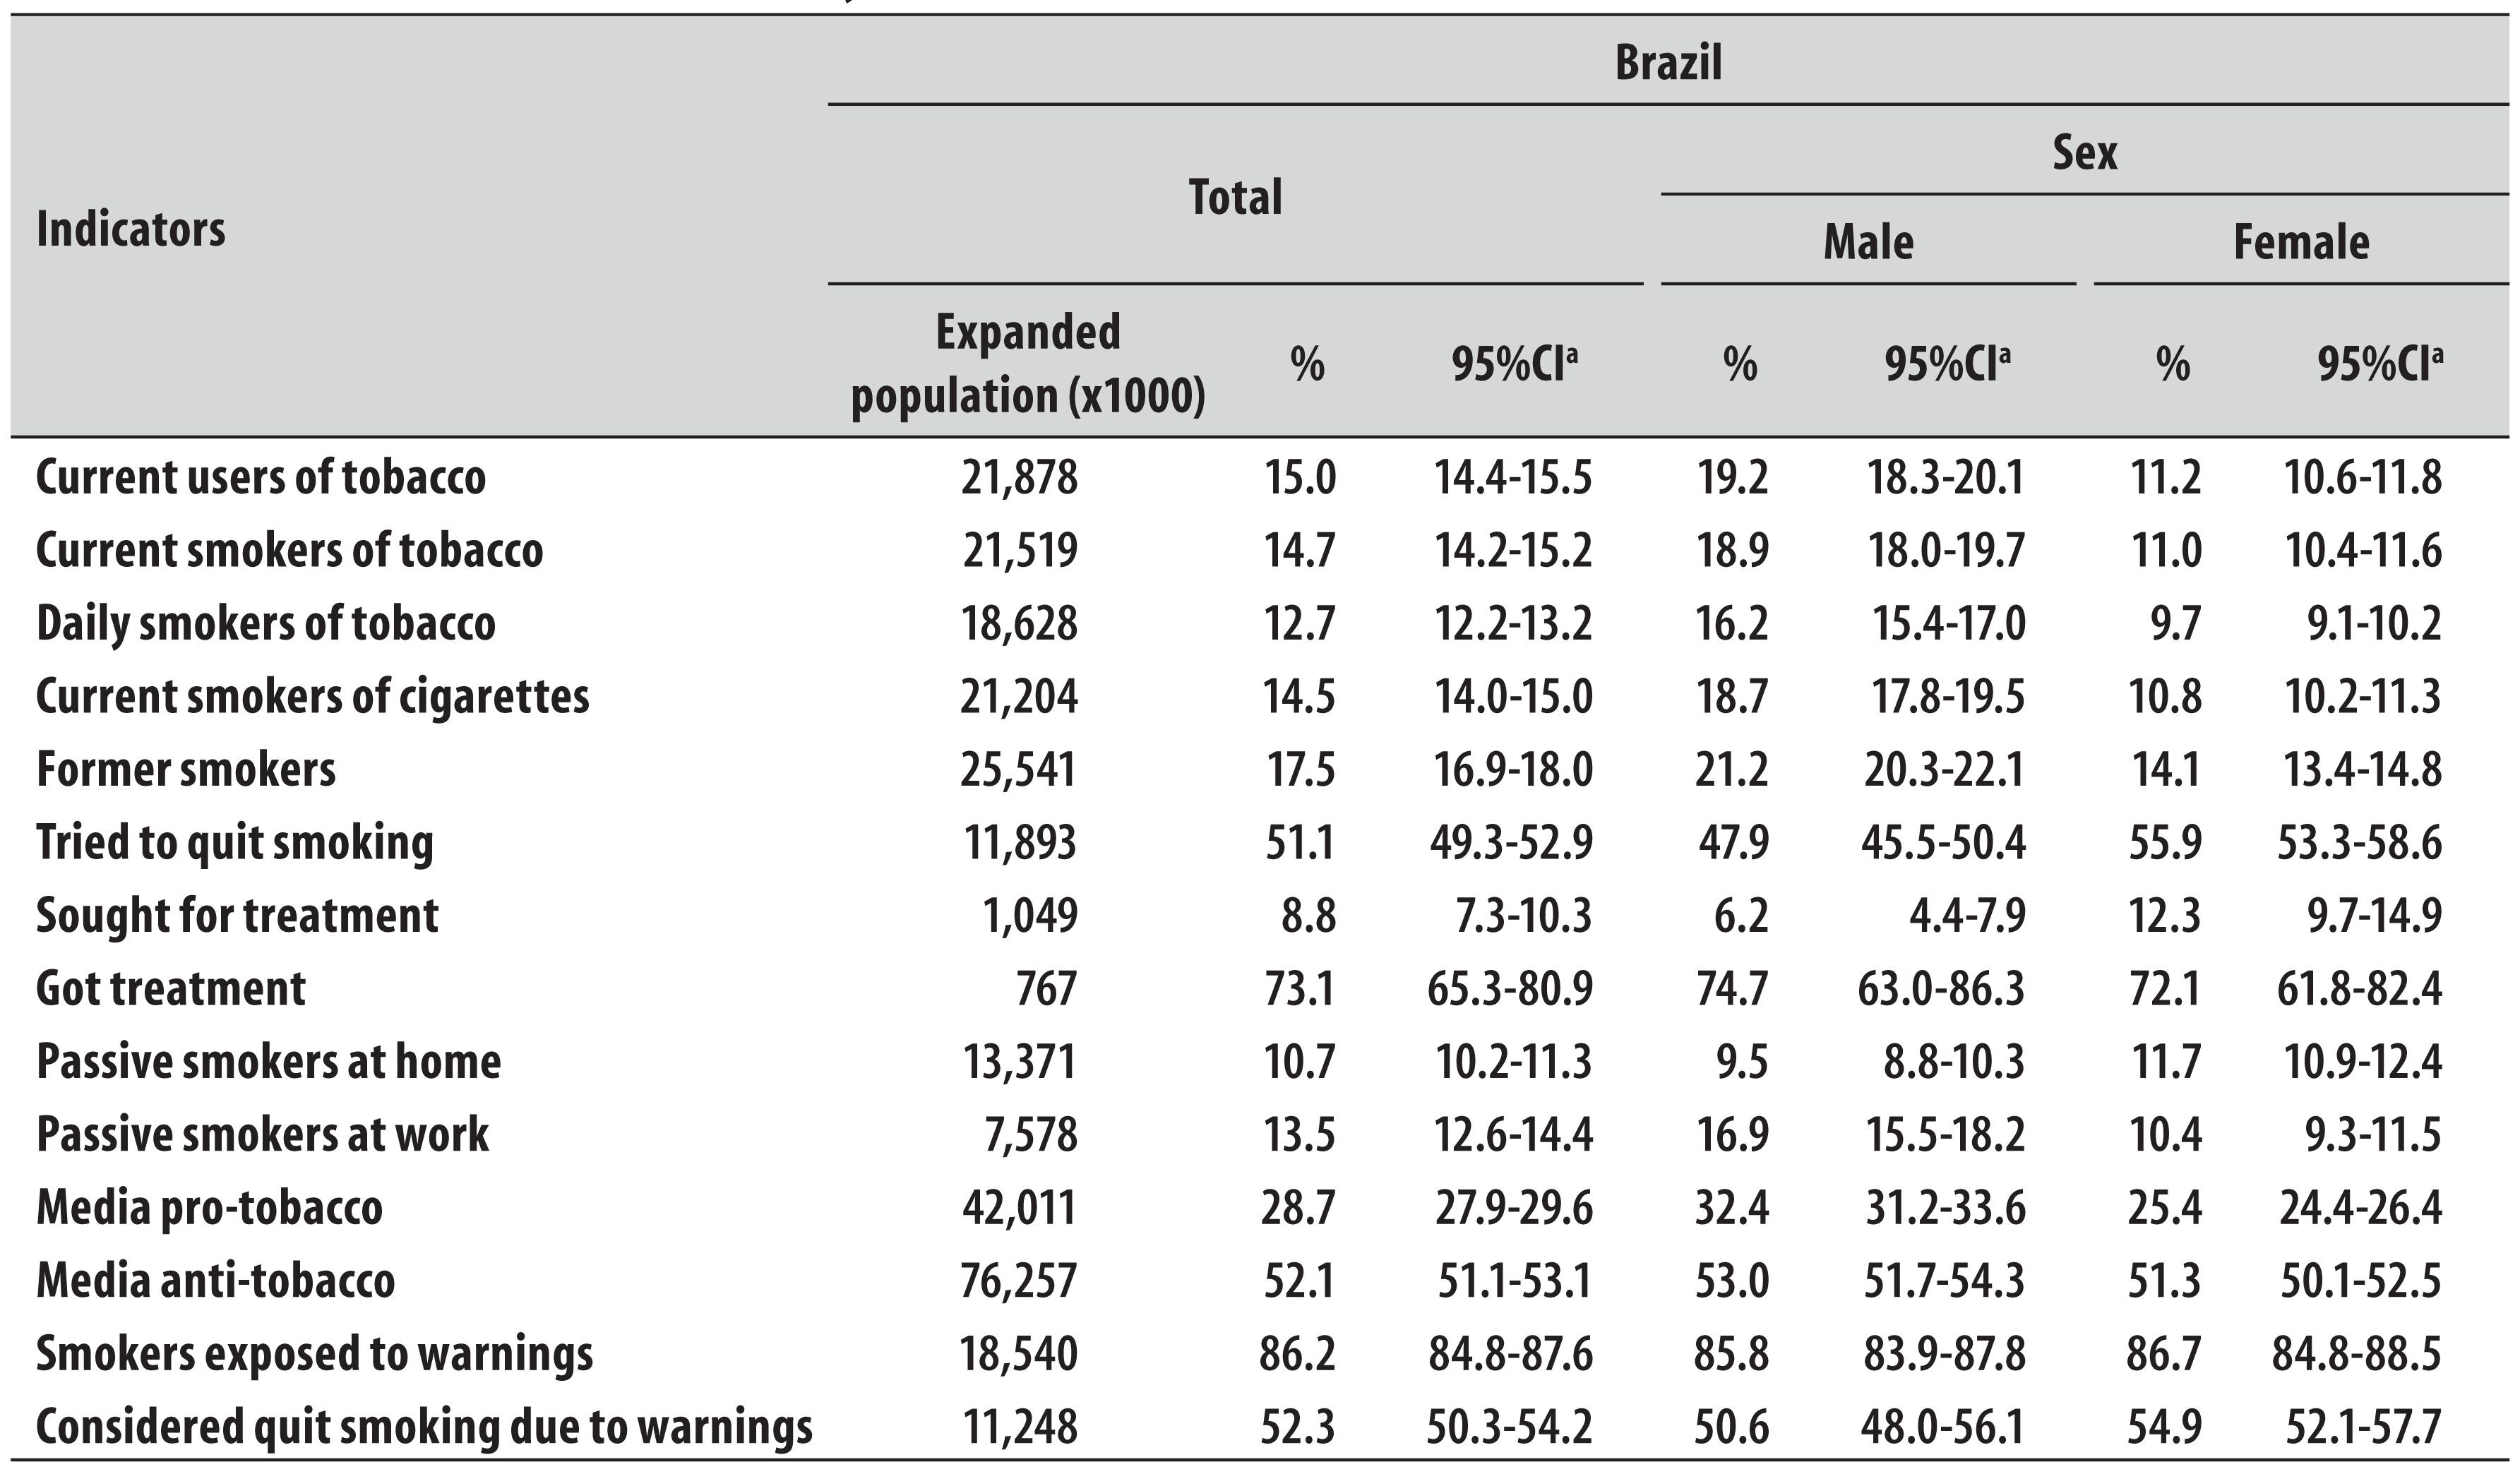 Table 1 Prevalence And Population Estimate In Absolute Numbers Of The Indicators Smoking According To Sex